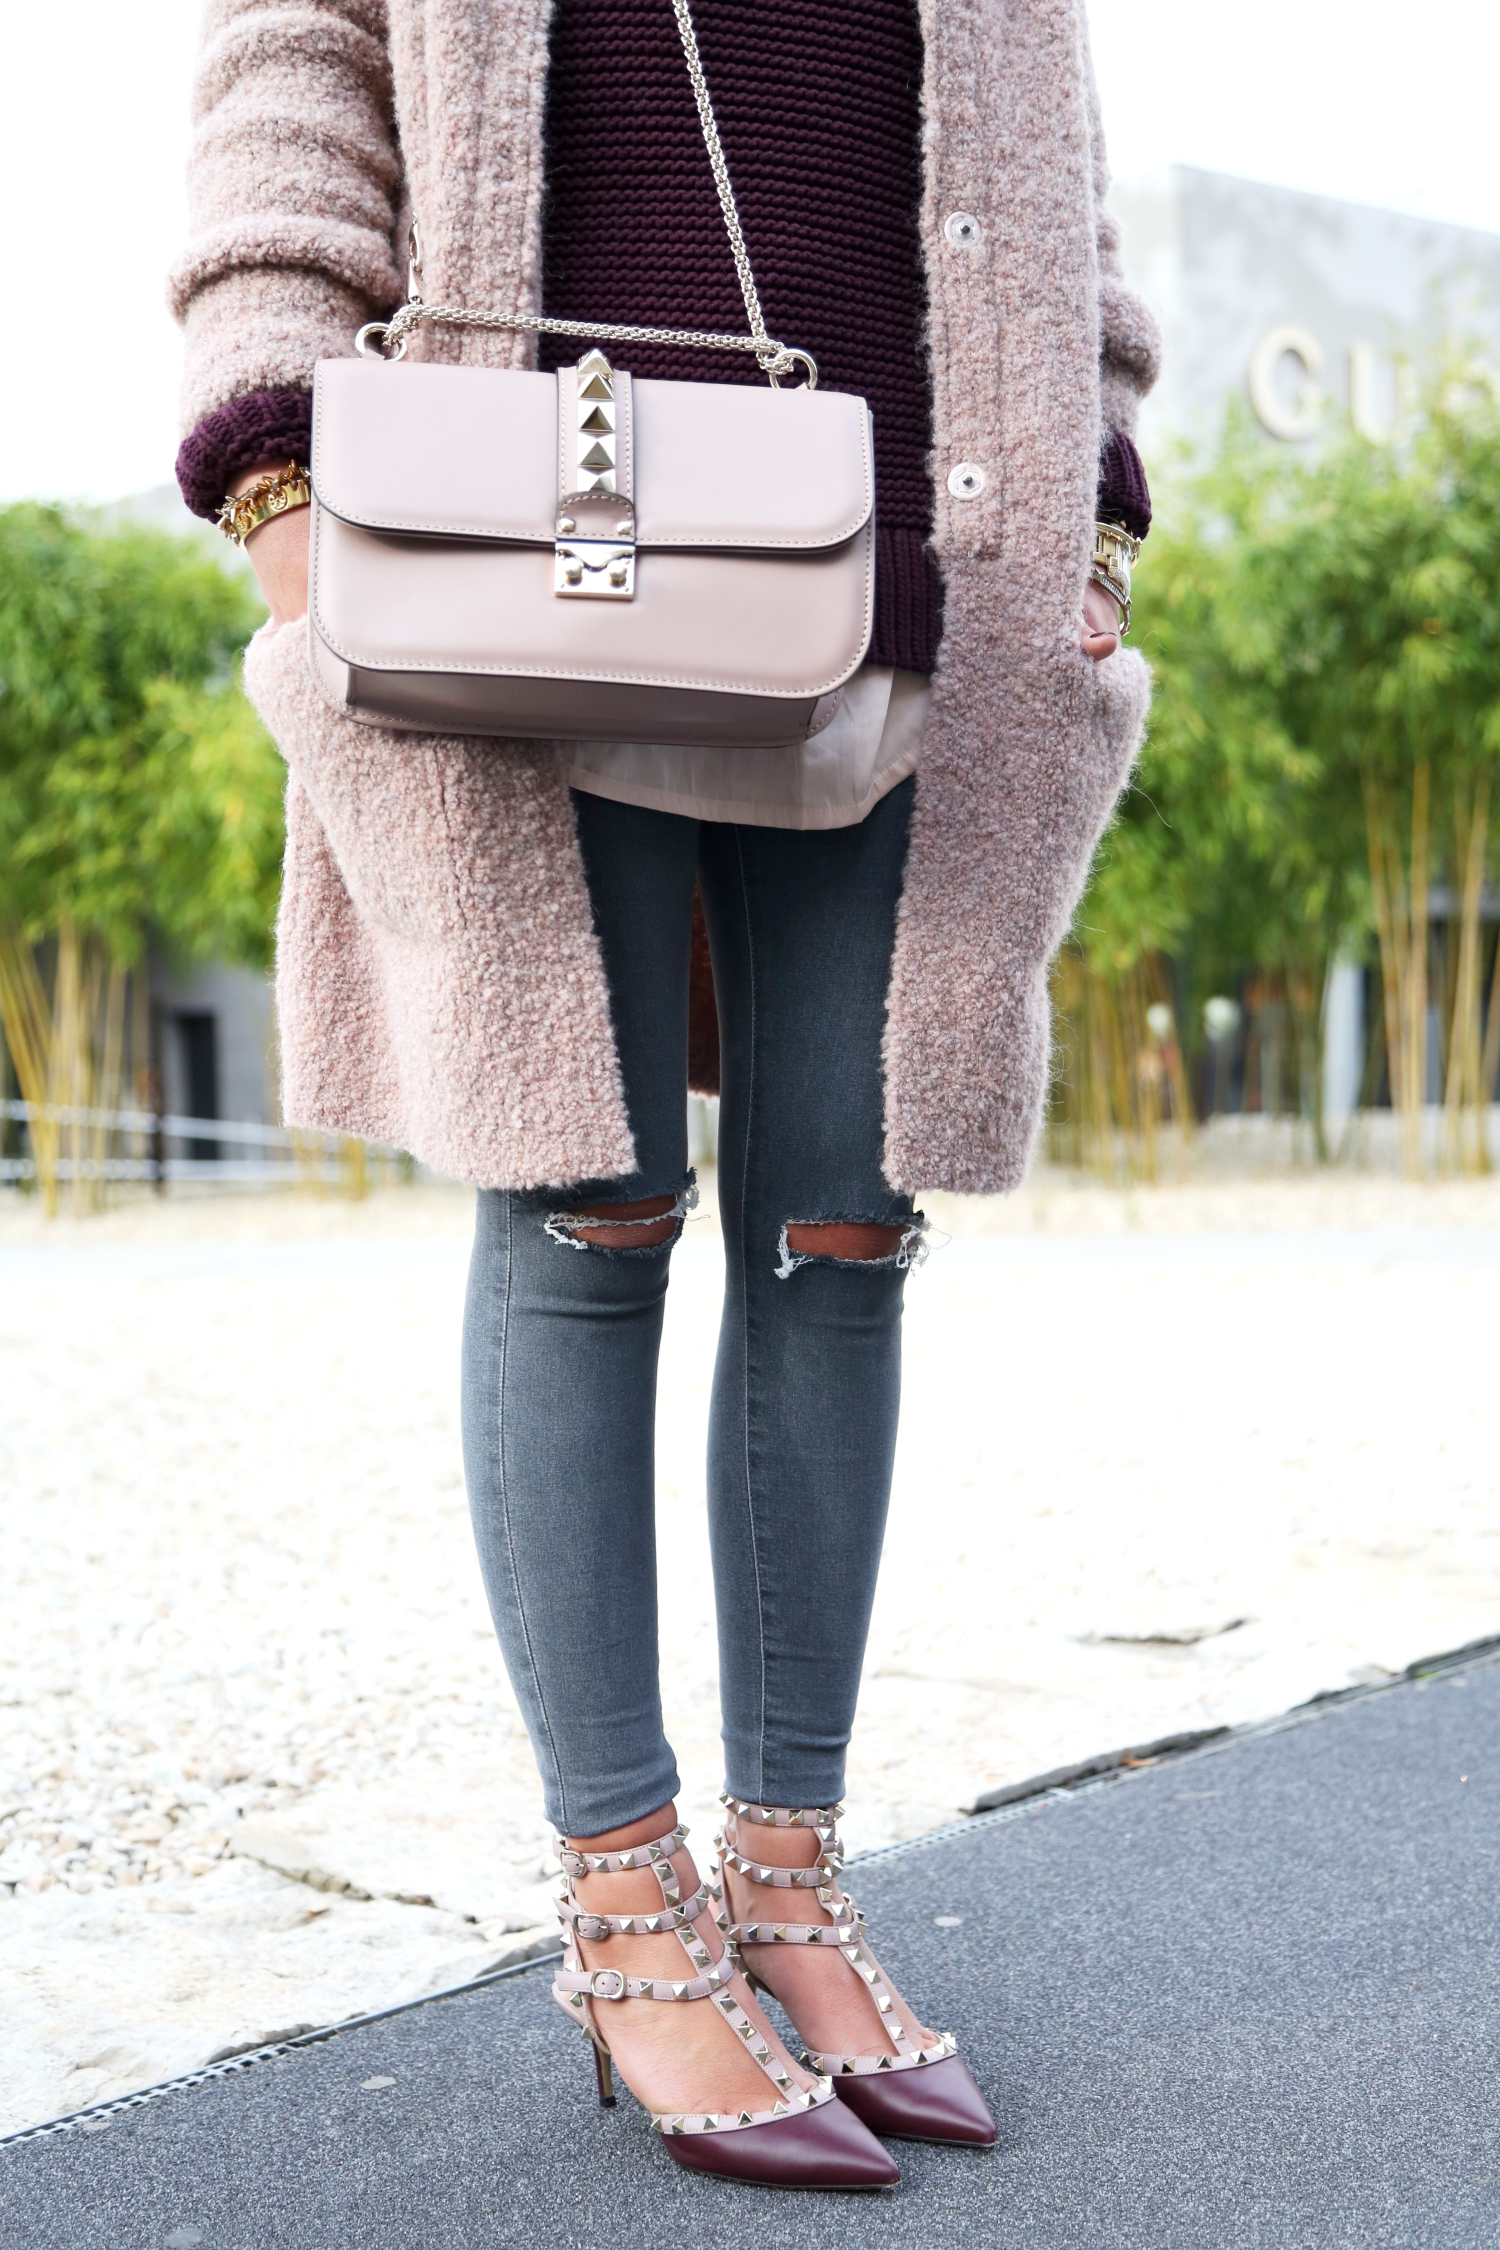 30e6db6bb8 ... outfit-fall-cardigan-valentino-rockstuds-glam-lock-bag- ...